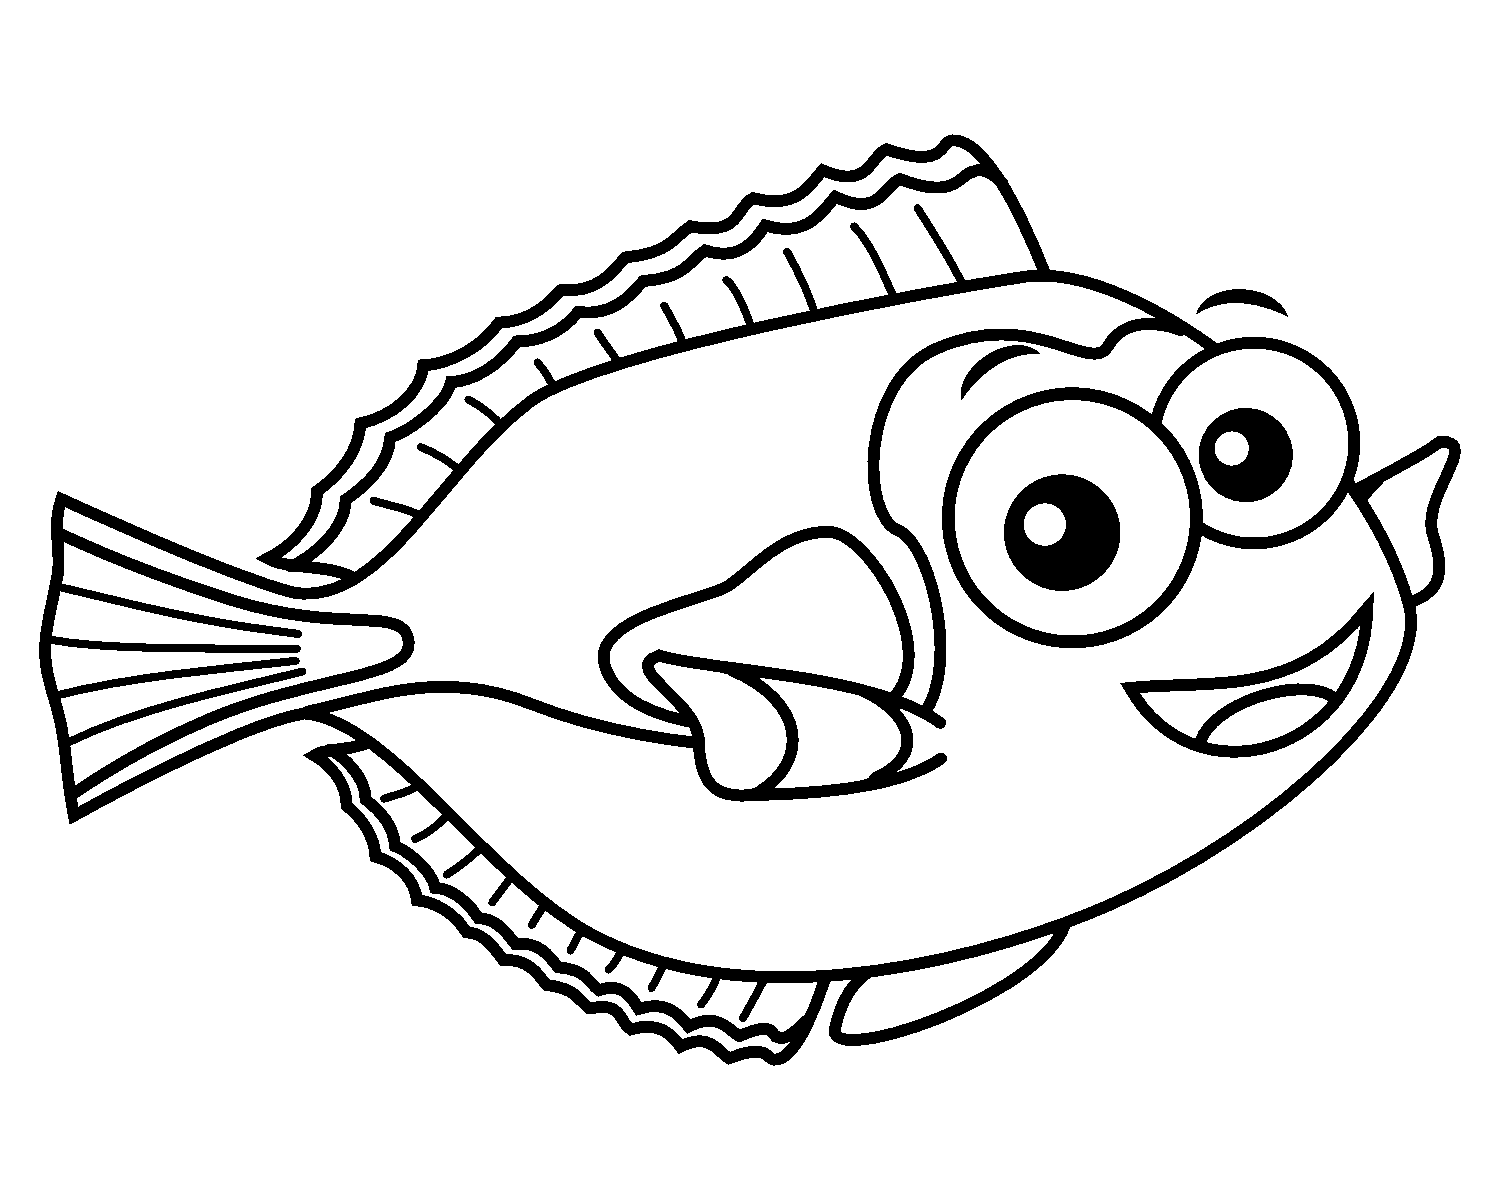 Fish Online Coloring For Kids With Online Tools In